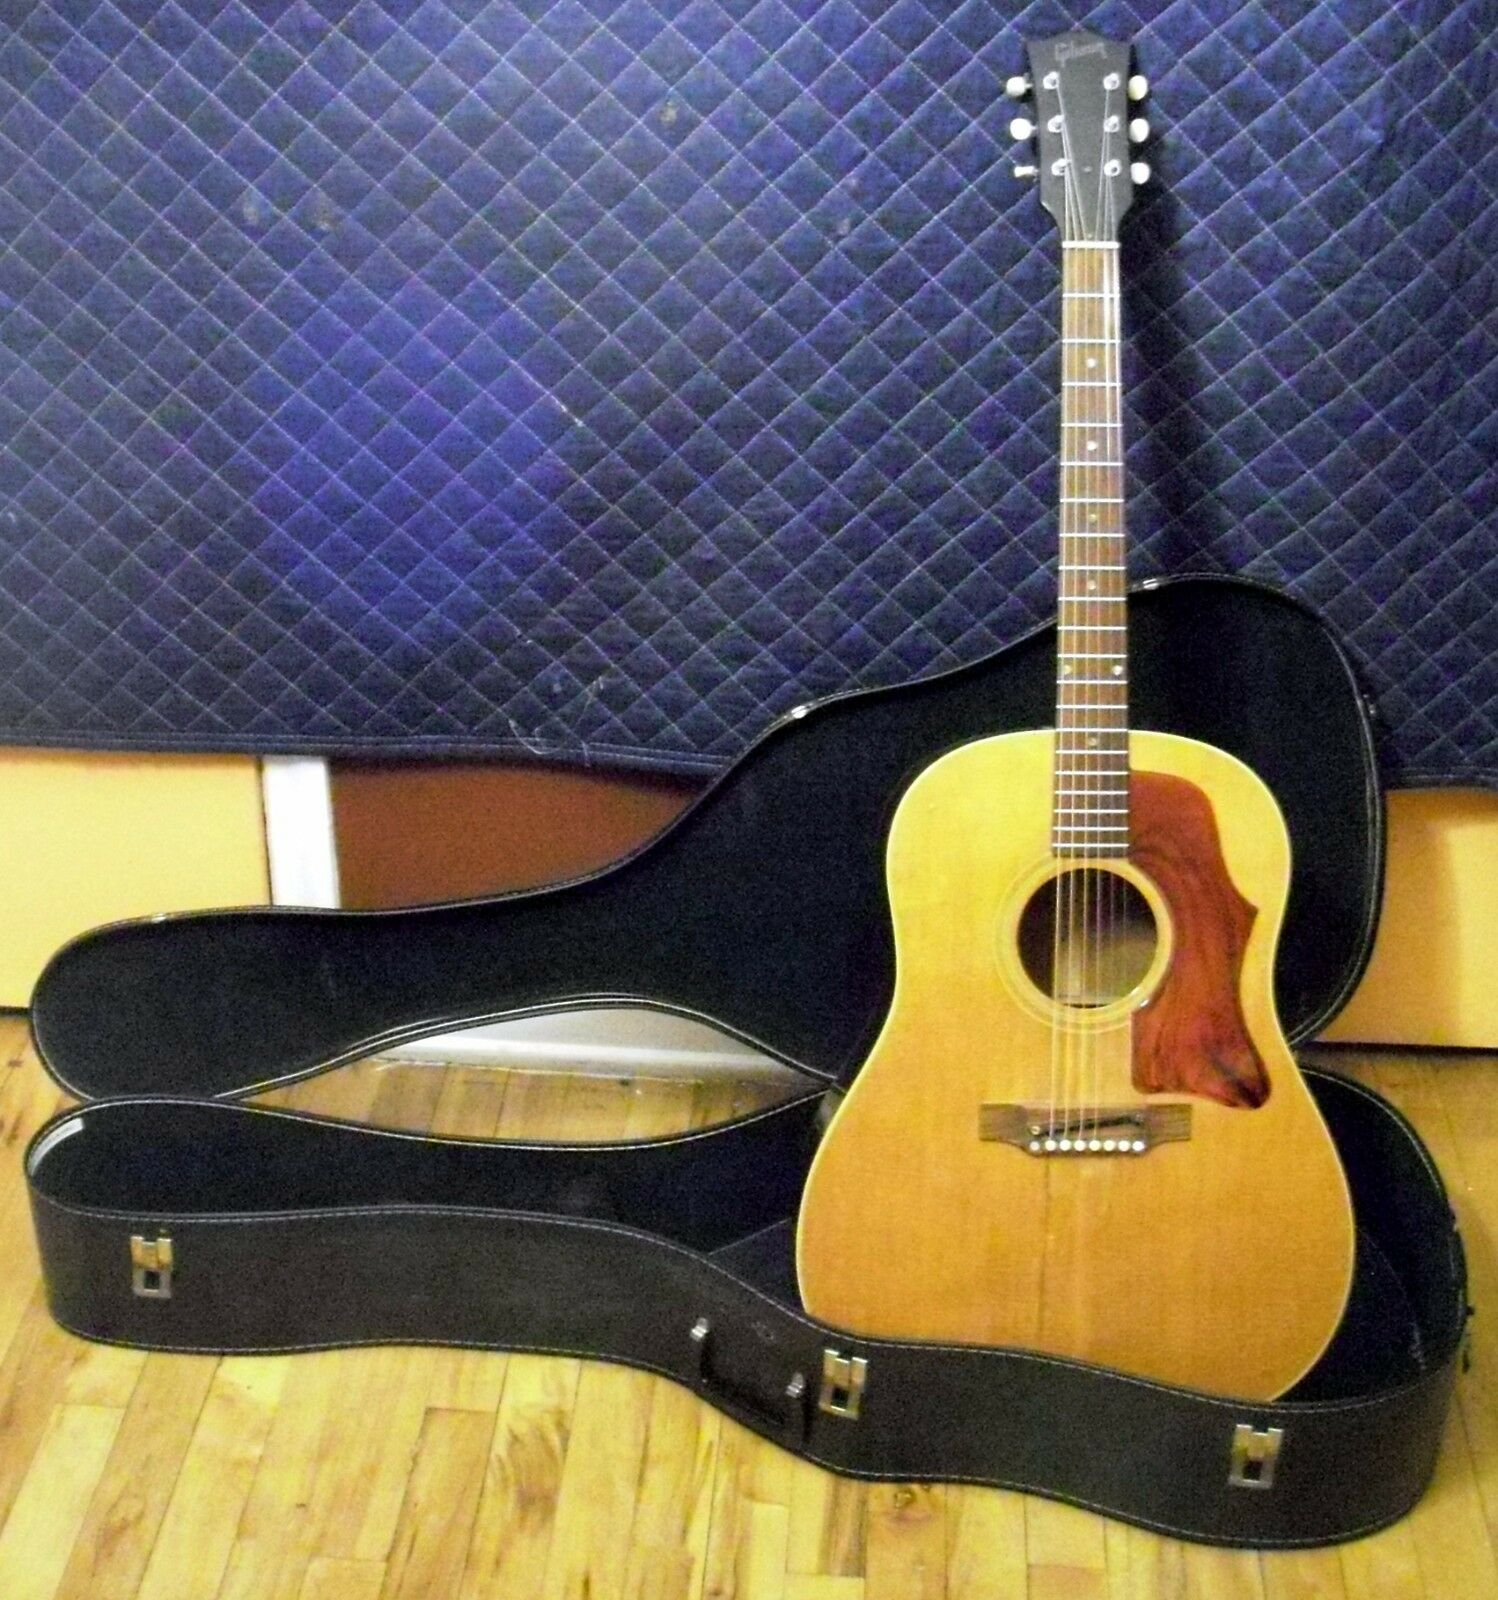 Late 1967 Early 1968 Gibson J50 ADJ Roundshoulder Dreadnought Acoustic Guitar